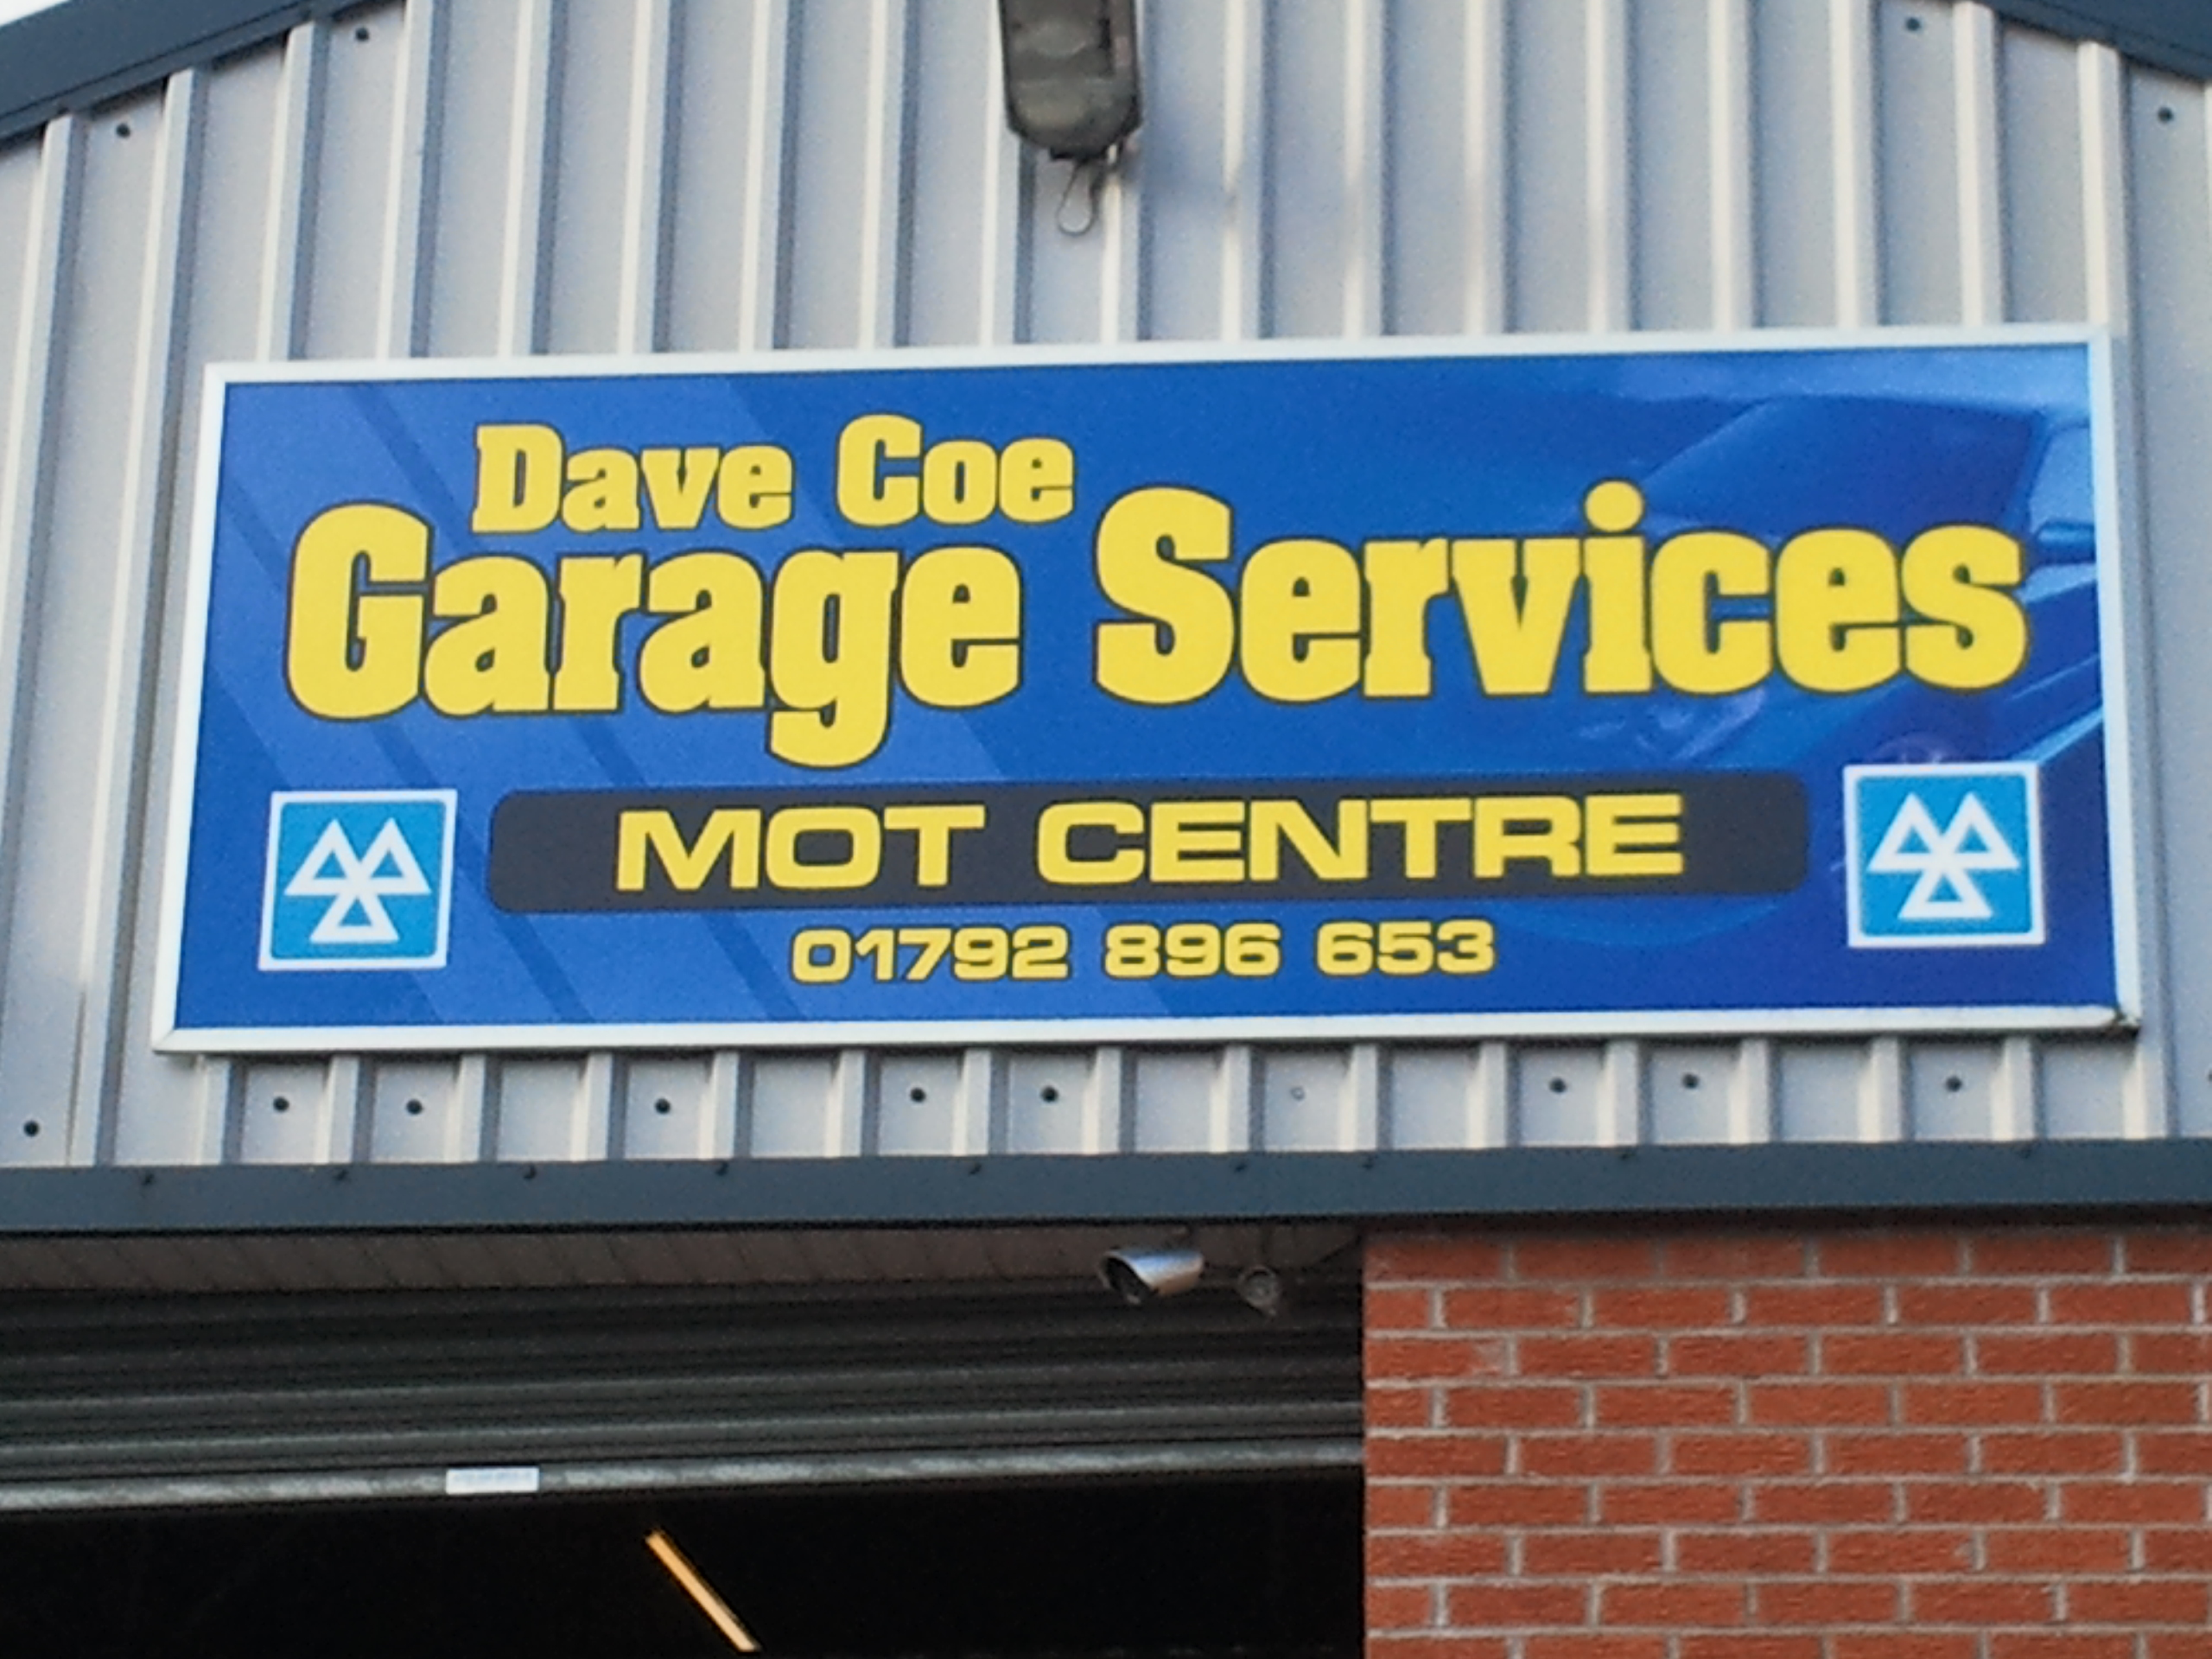 Garage Service Mots : Dave coe garage services call now for a quote